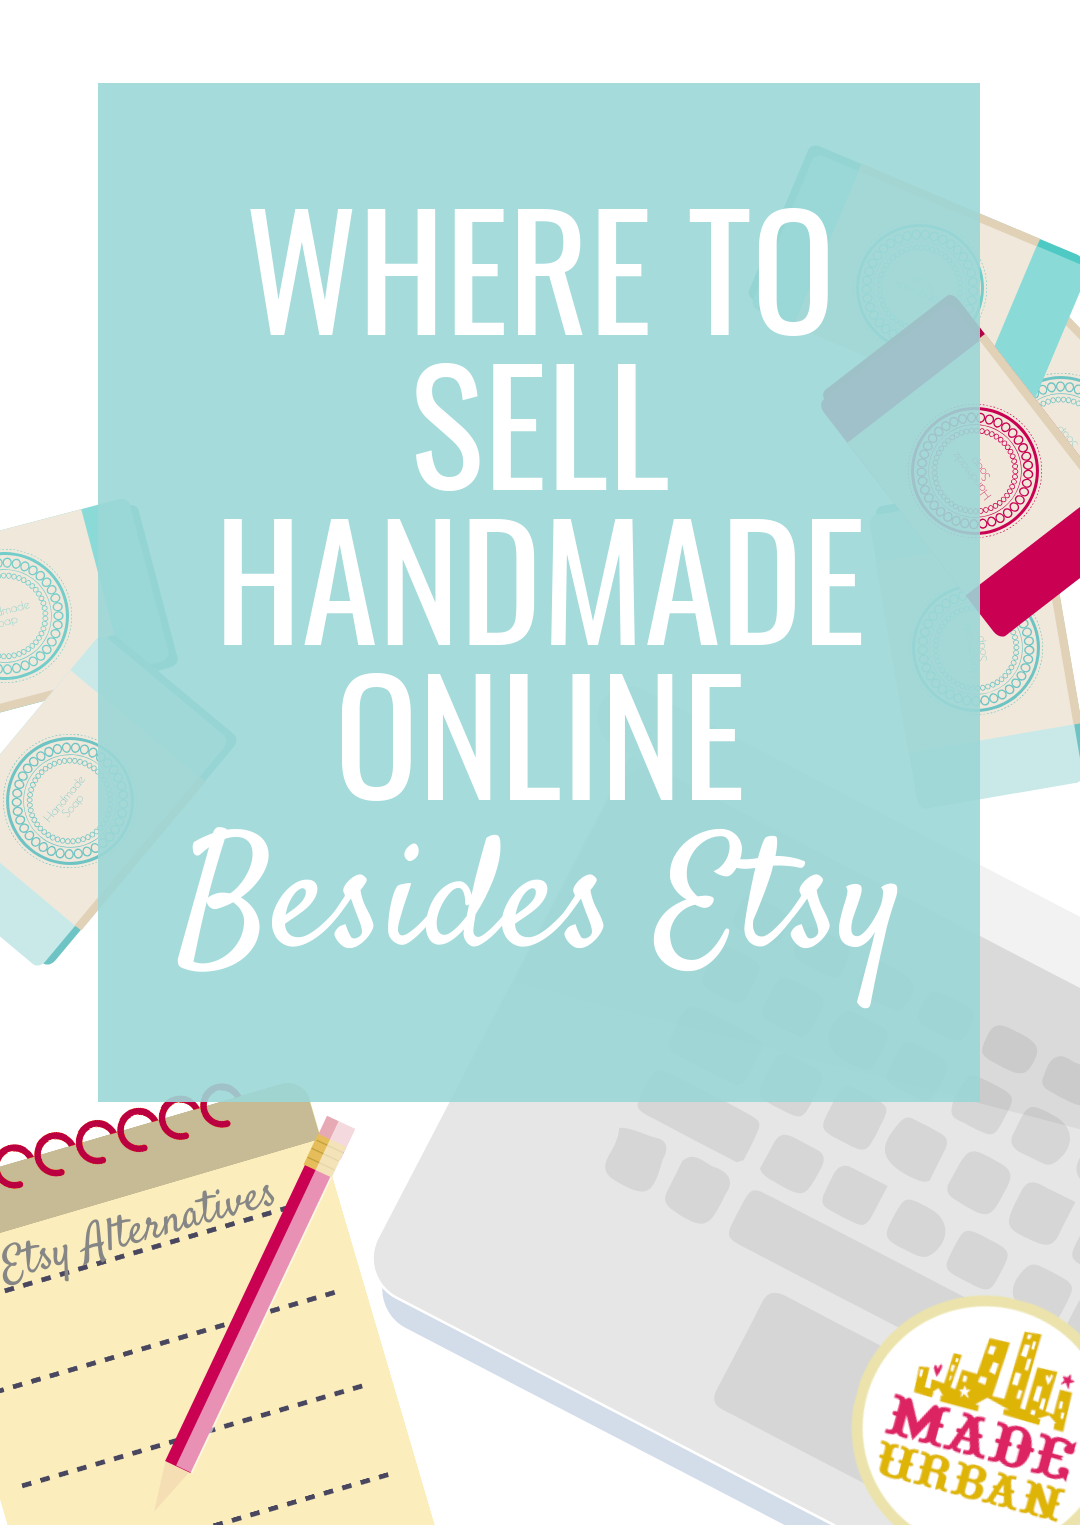 If you're looking for an alternative to Etsy, this article lists 30 places for crafters and craft businesses to sell their handmade items online. You can choose some to use in addition to Etsy or to replace your Etsy shop.